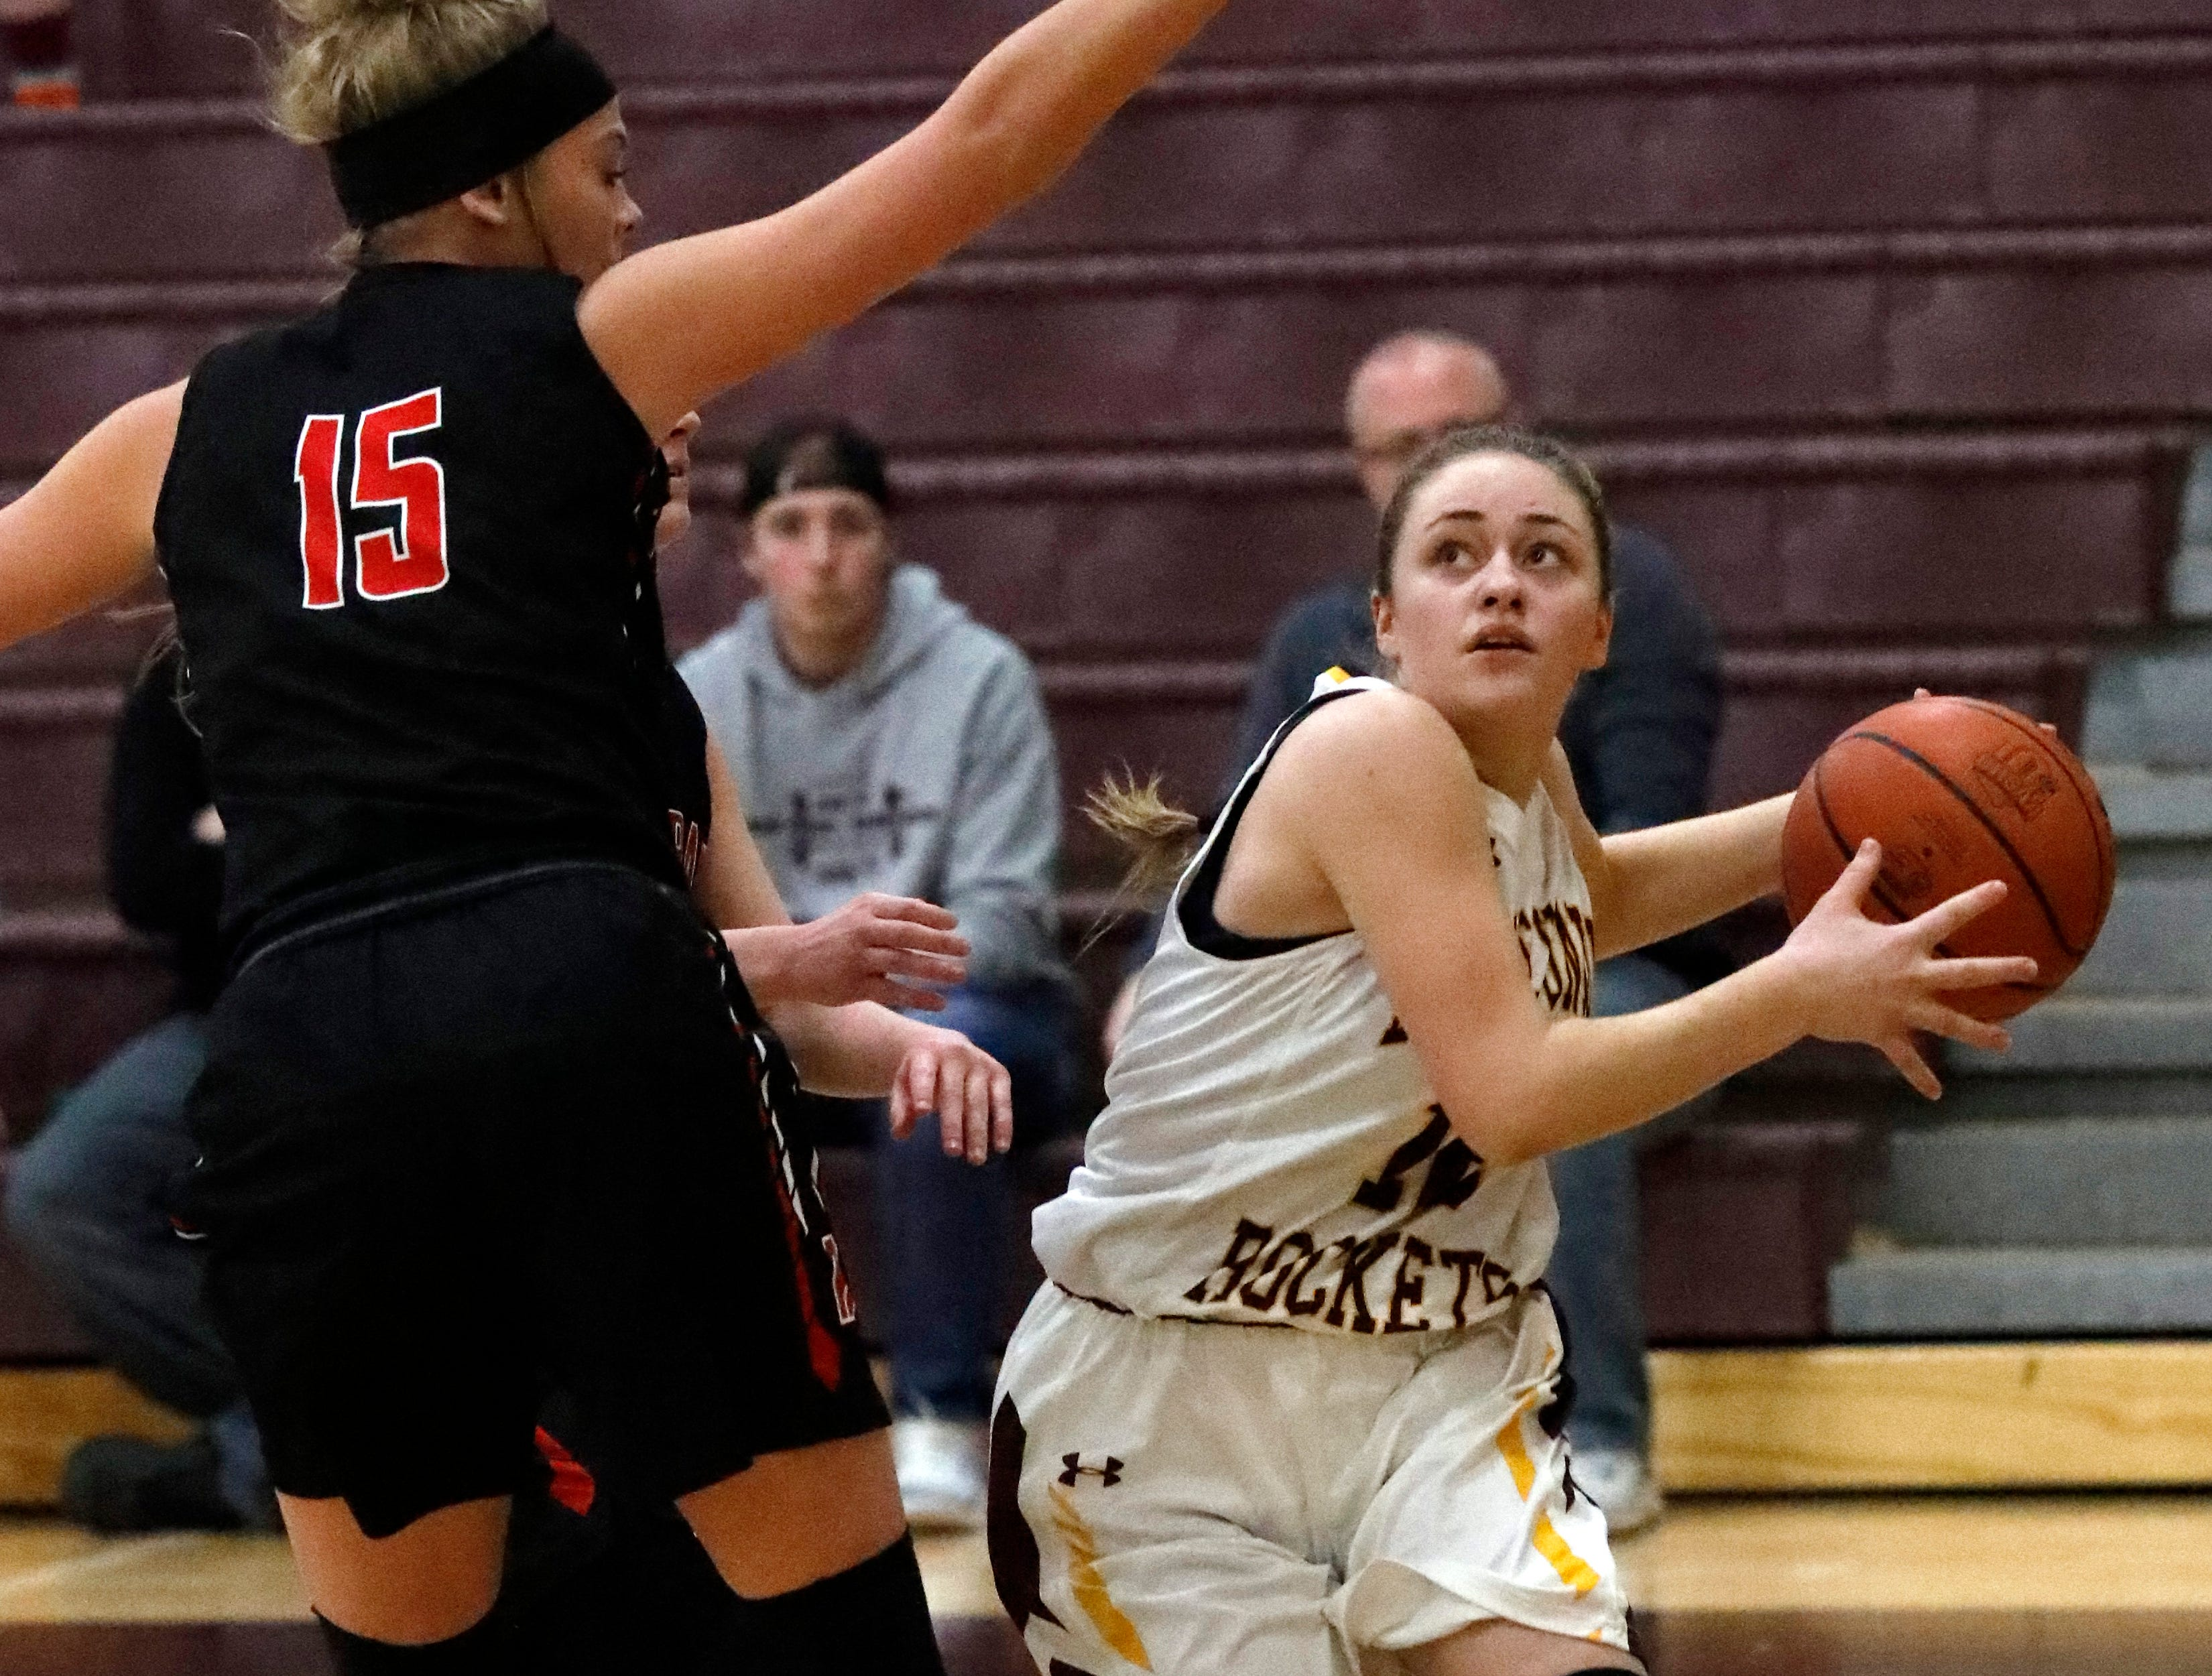 Bishop Rosecrans defeated Berne Union 46-43 Friday night, Feb. 8, 2019, at Berne Union High School in Sugar Grove.